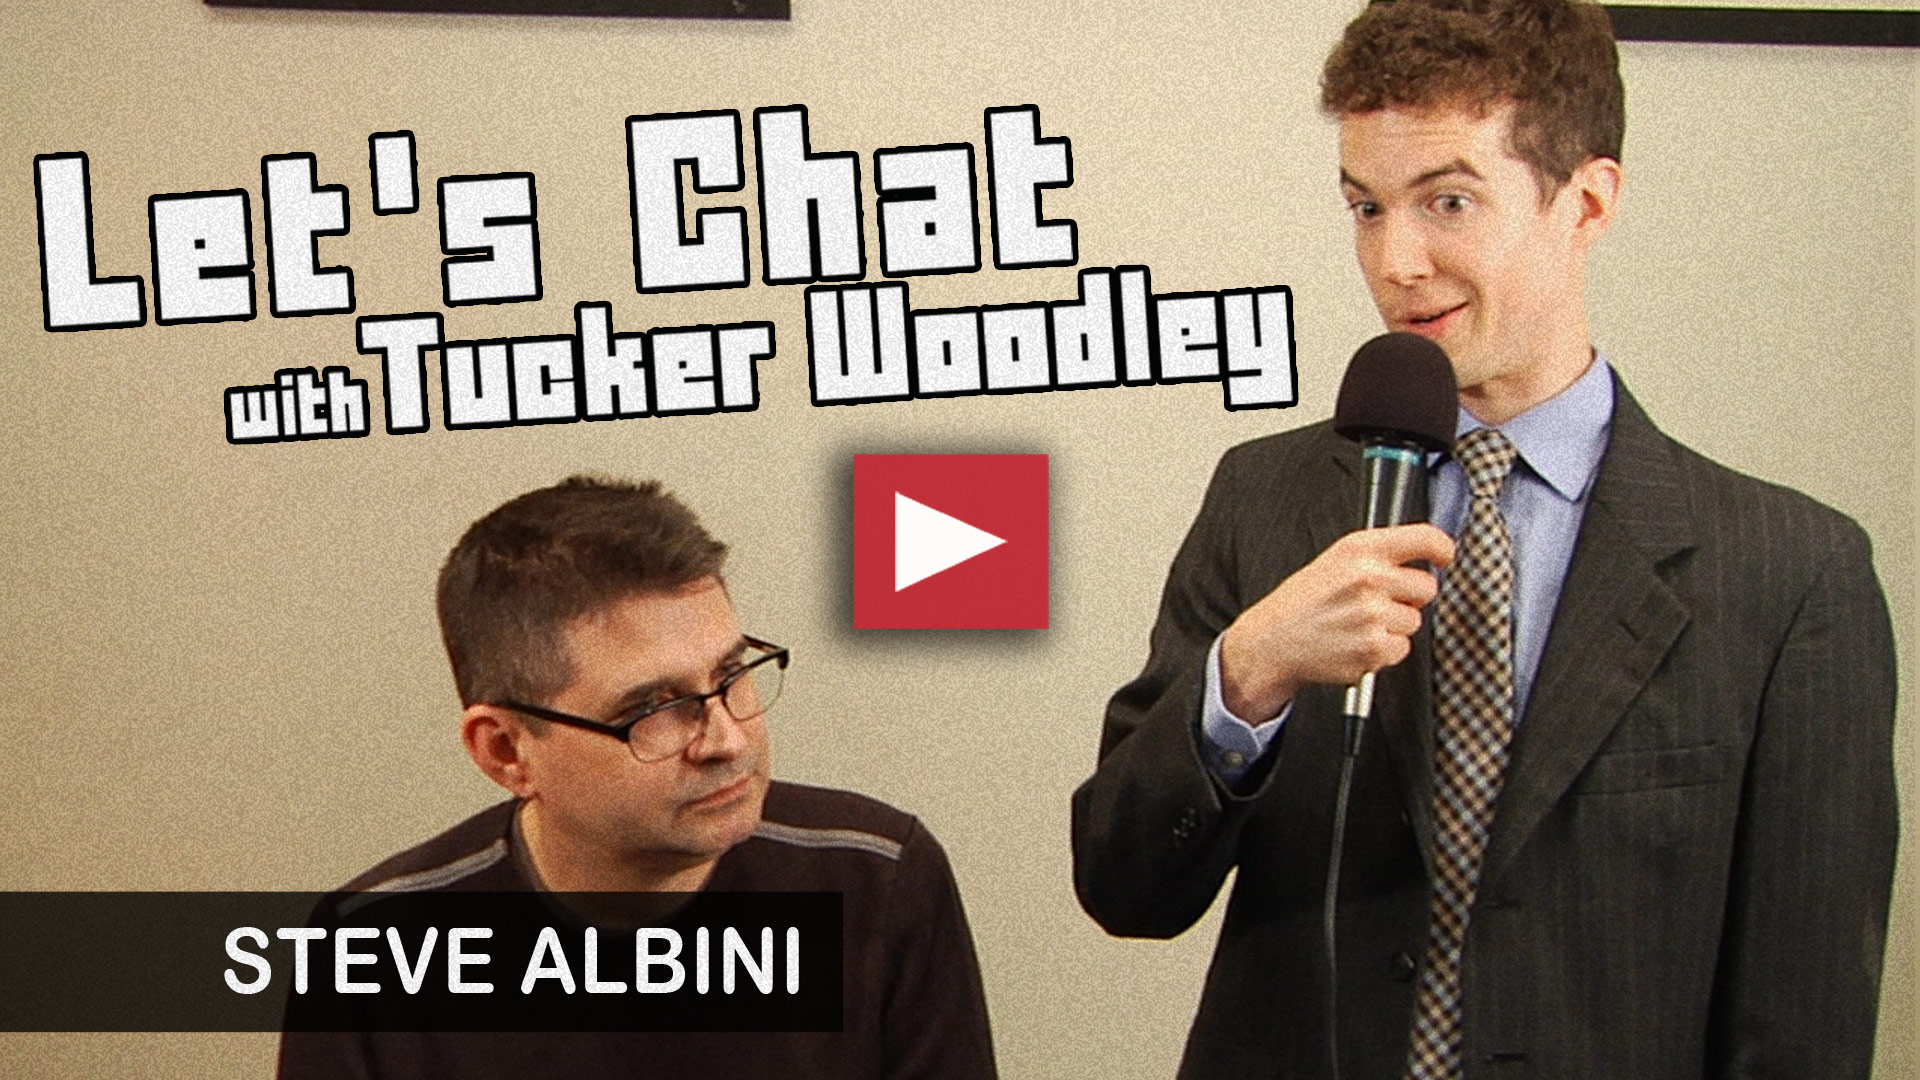 Steve Albini on Let's Chat with Tucker Woodley